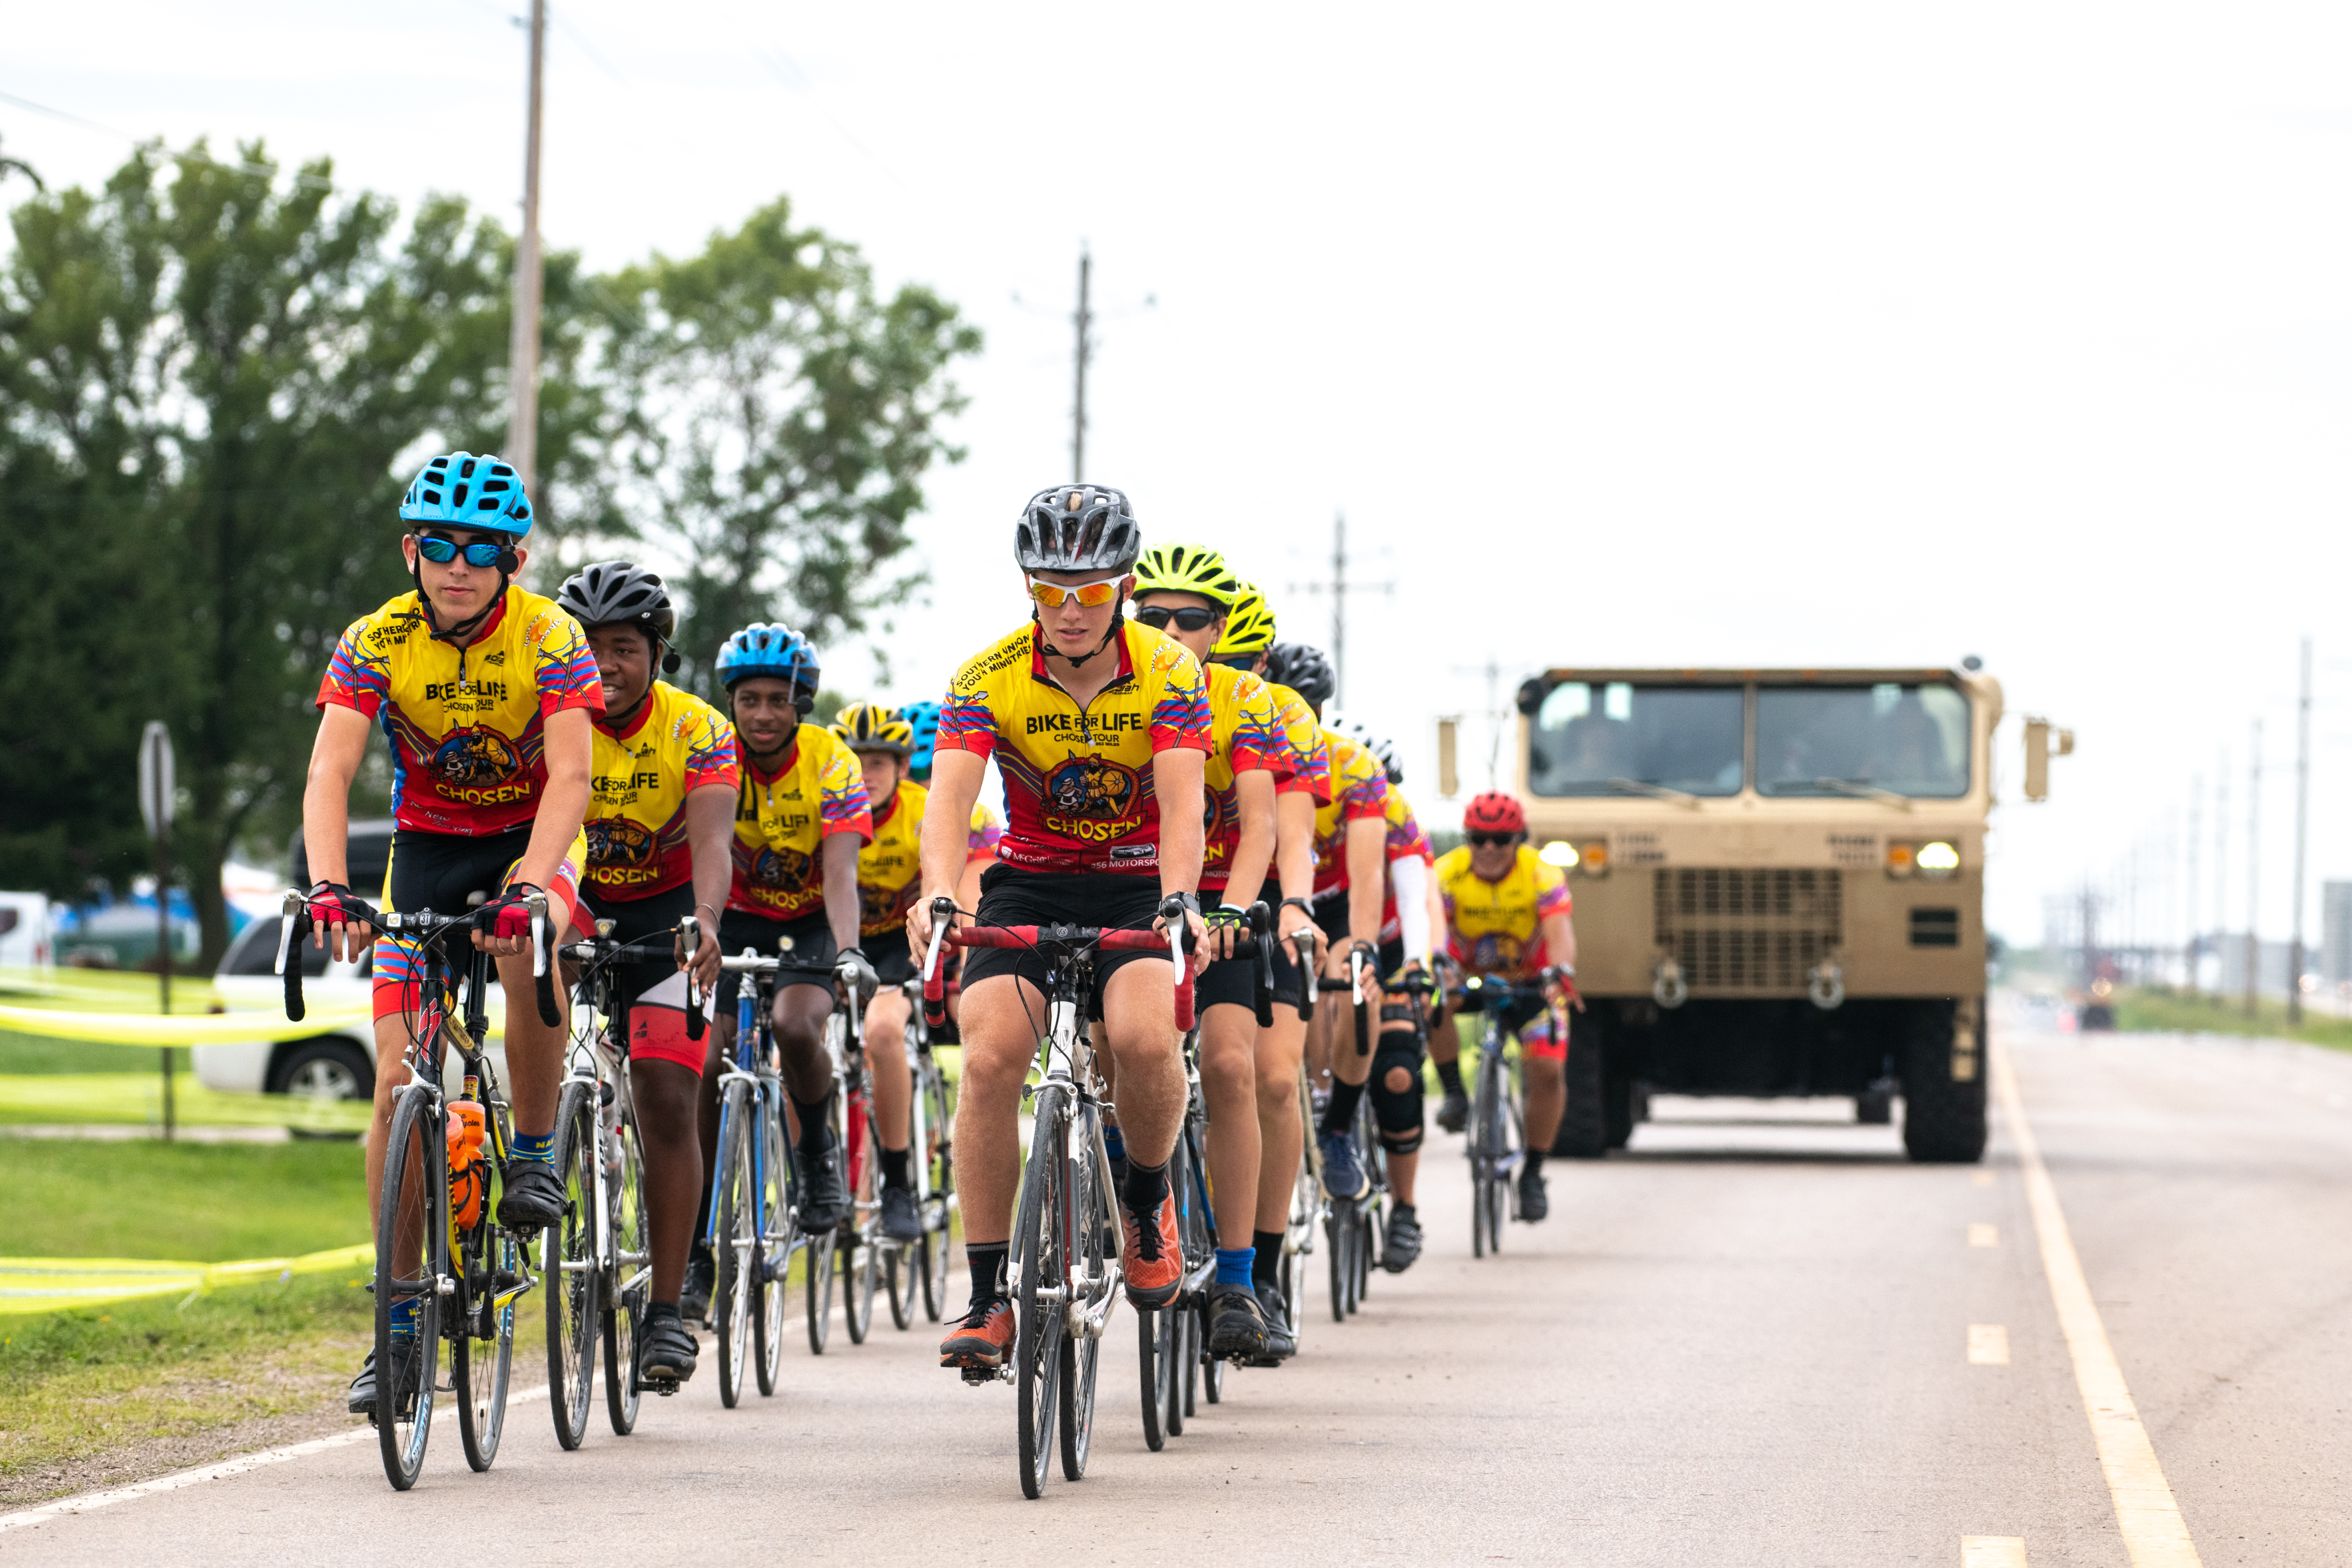 Bike for Life riders arrive for the 2019 Oshkosh Camporee